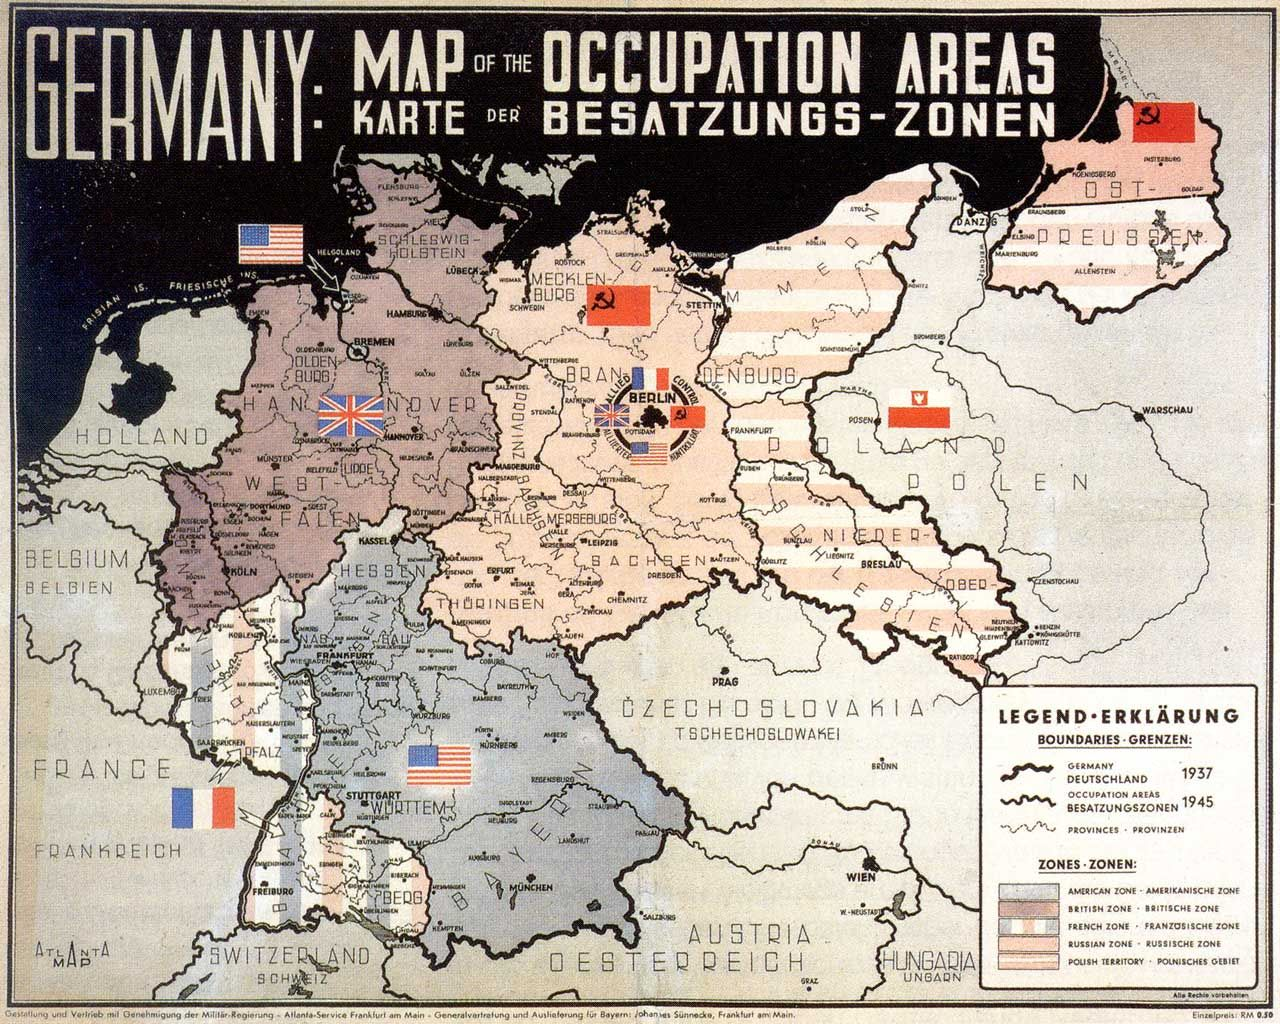 occupation areas of germany after 1945 map germany